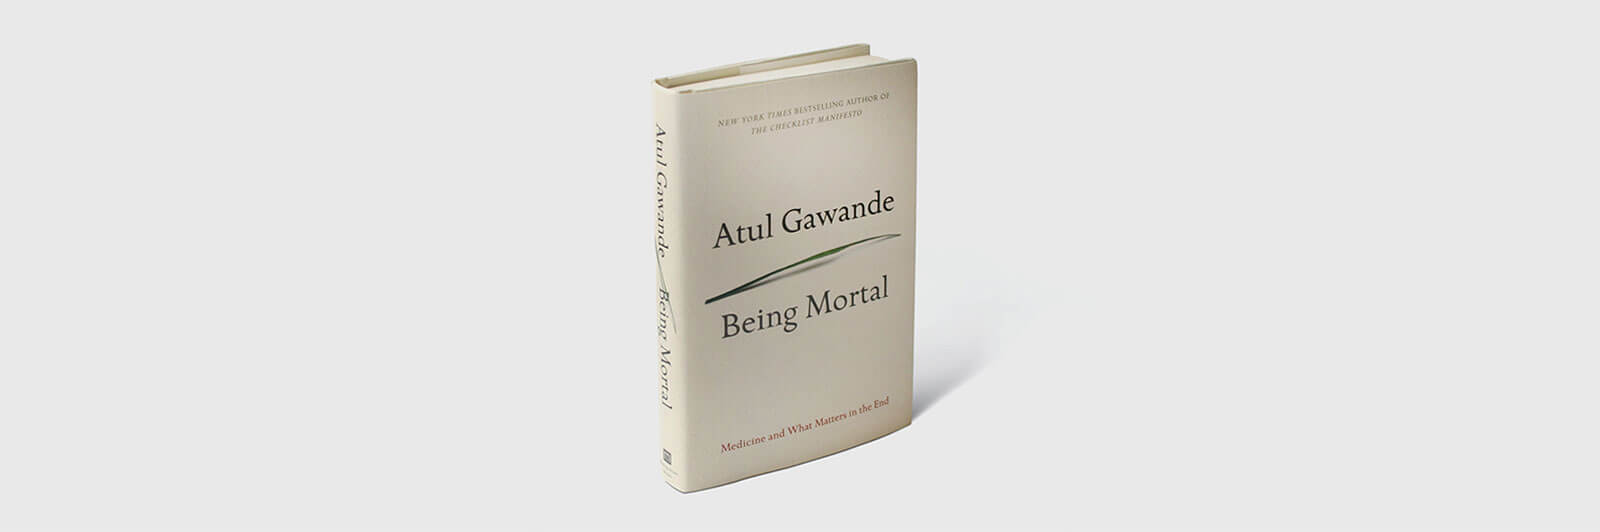 Being Mortal book cover with grass blade